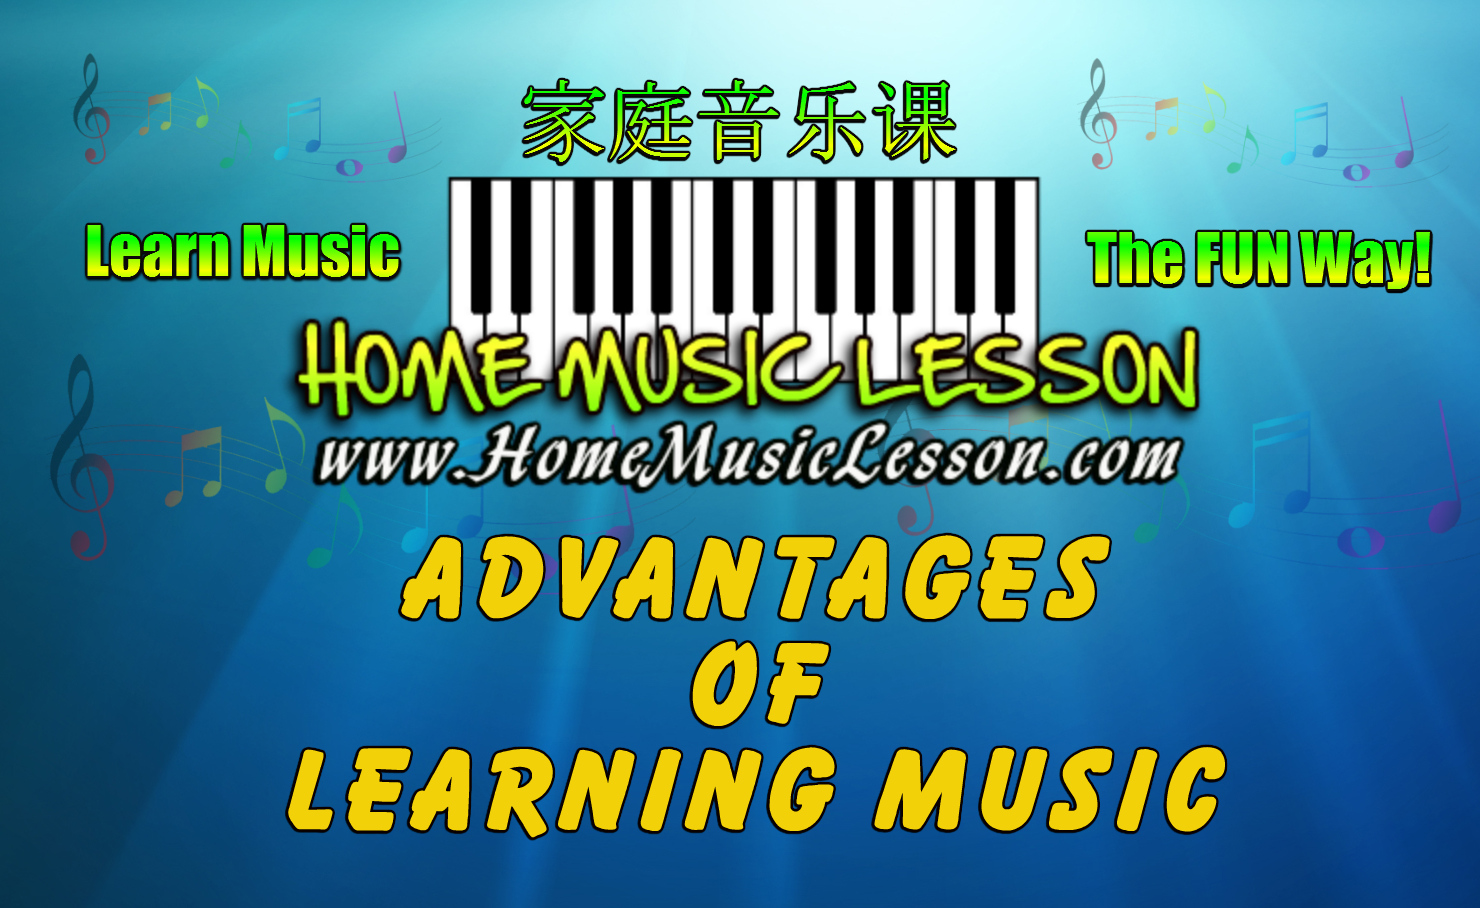 Advantages of learning music